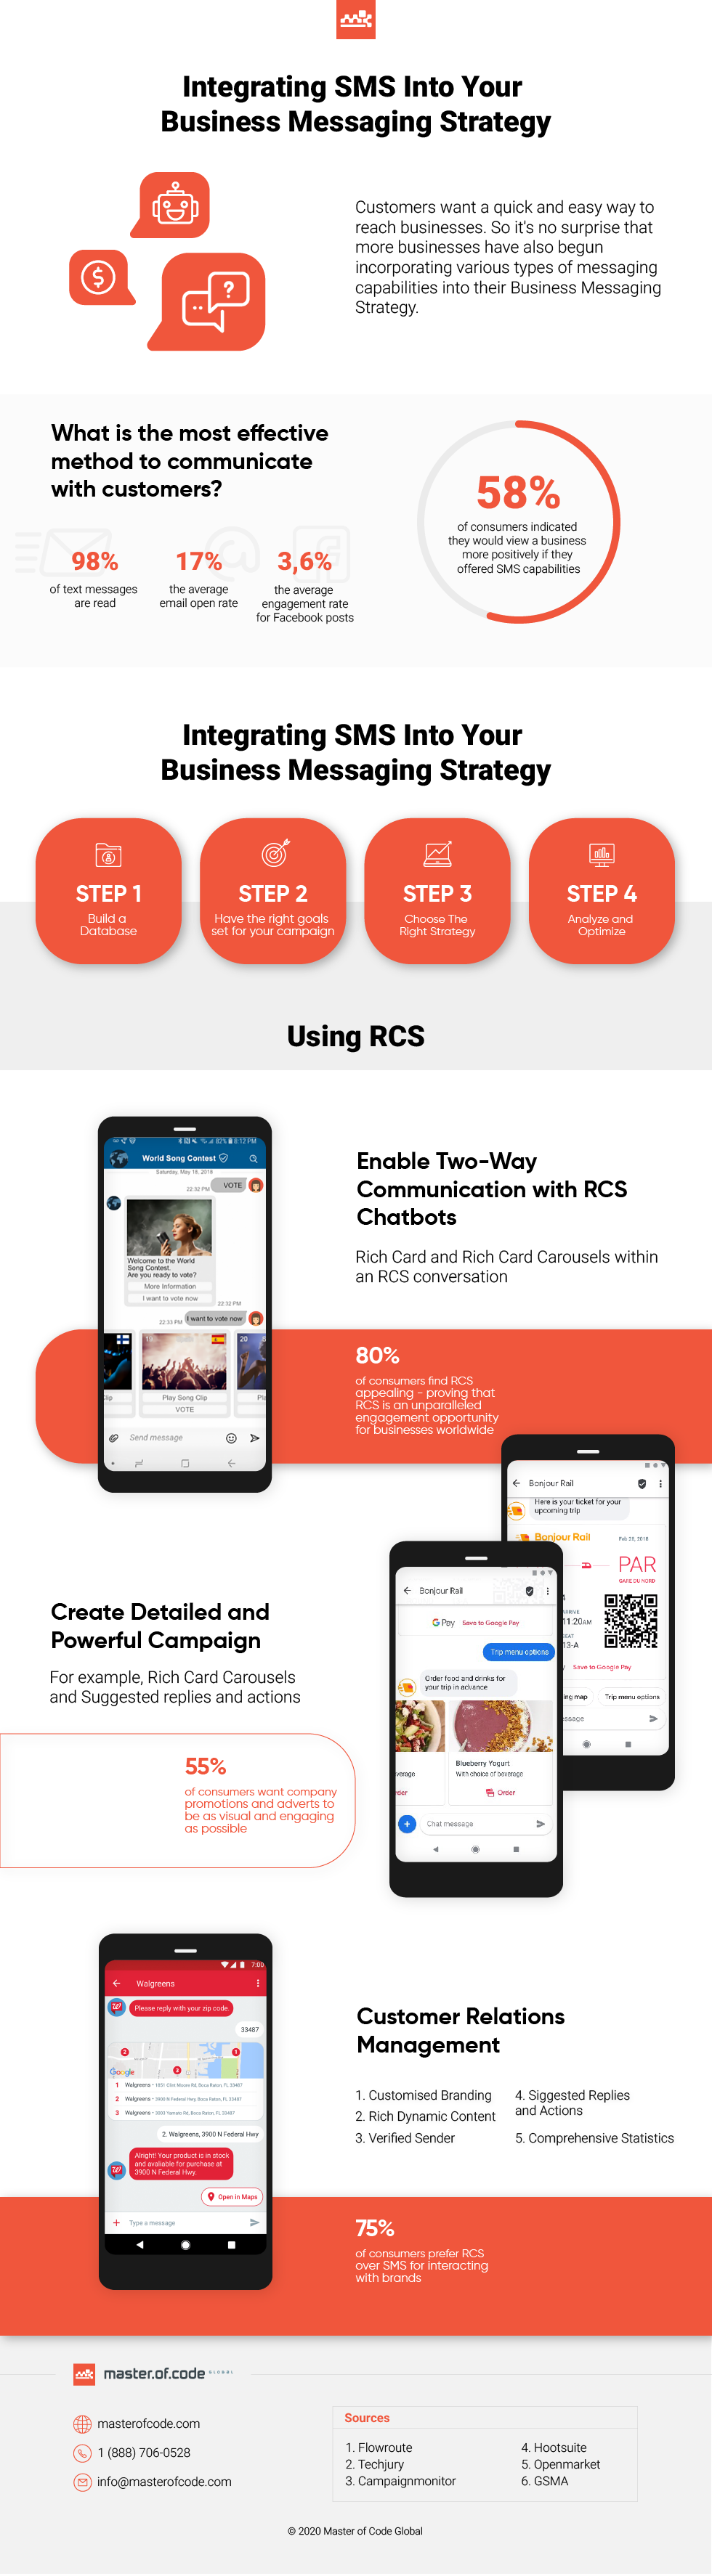 How to integrate RCS into your Business Messaging Strategy #infographic